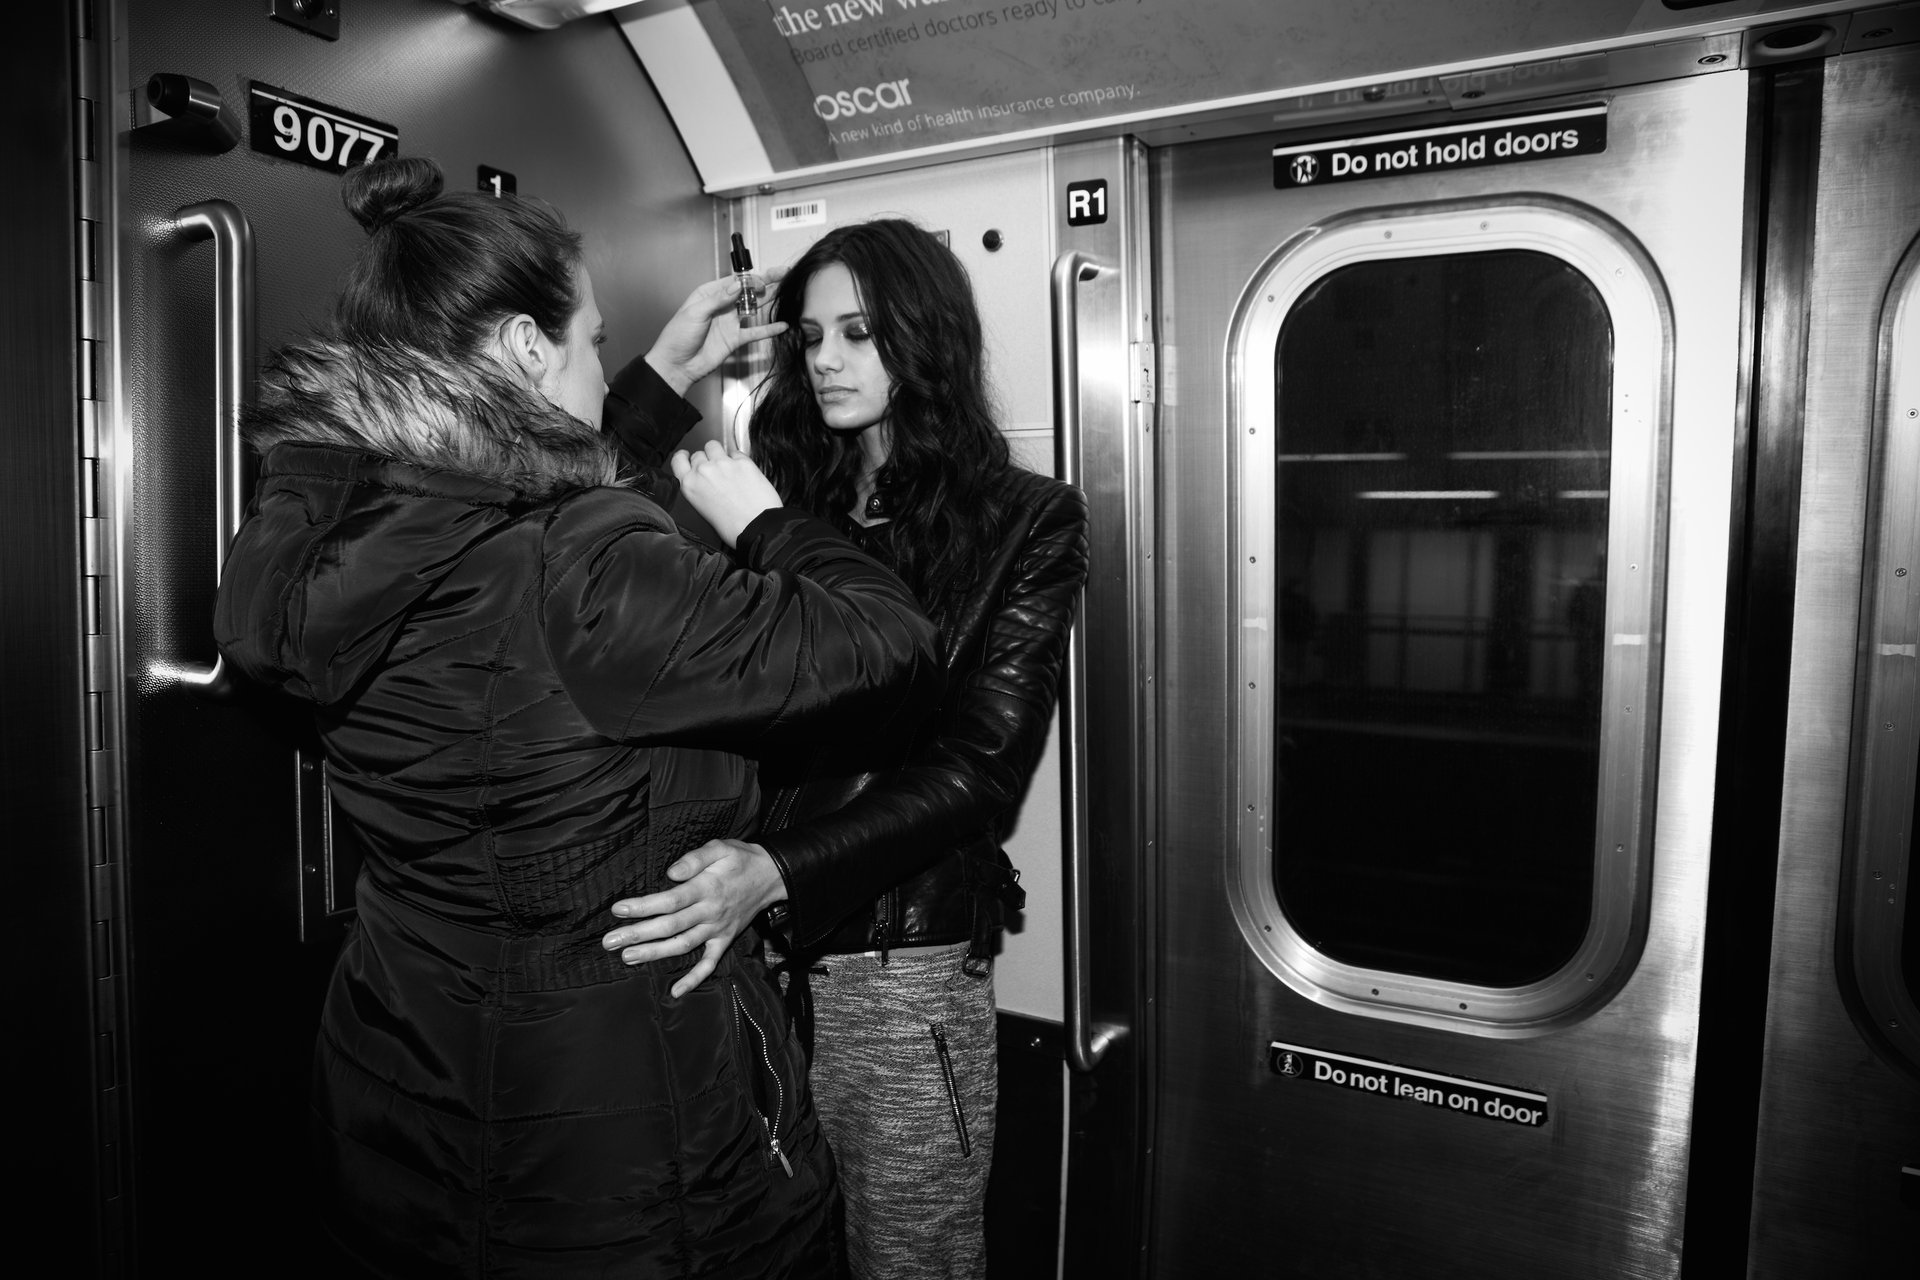 Last touch ups on Anja Leuenberger for a shoot with Thomas Buchwalder in the Subway in New York